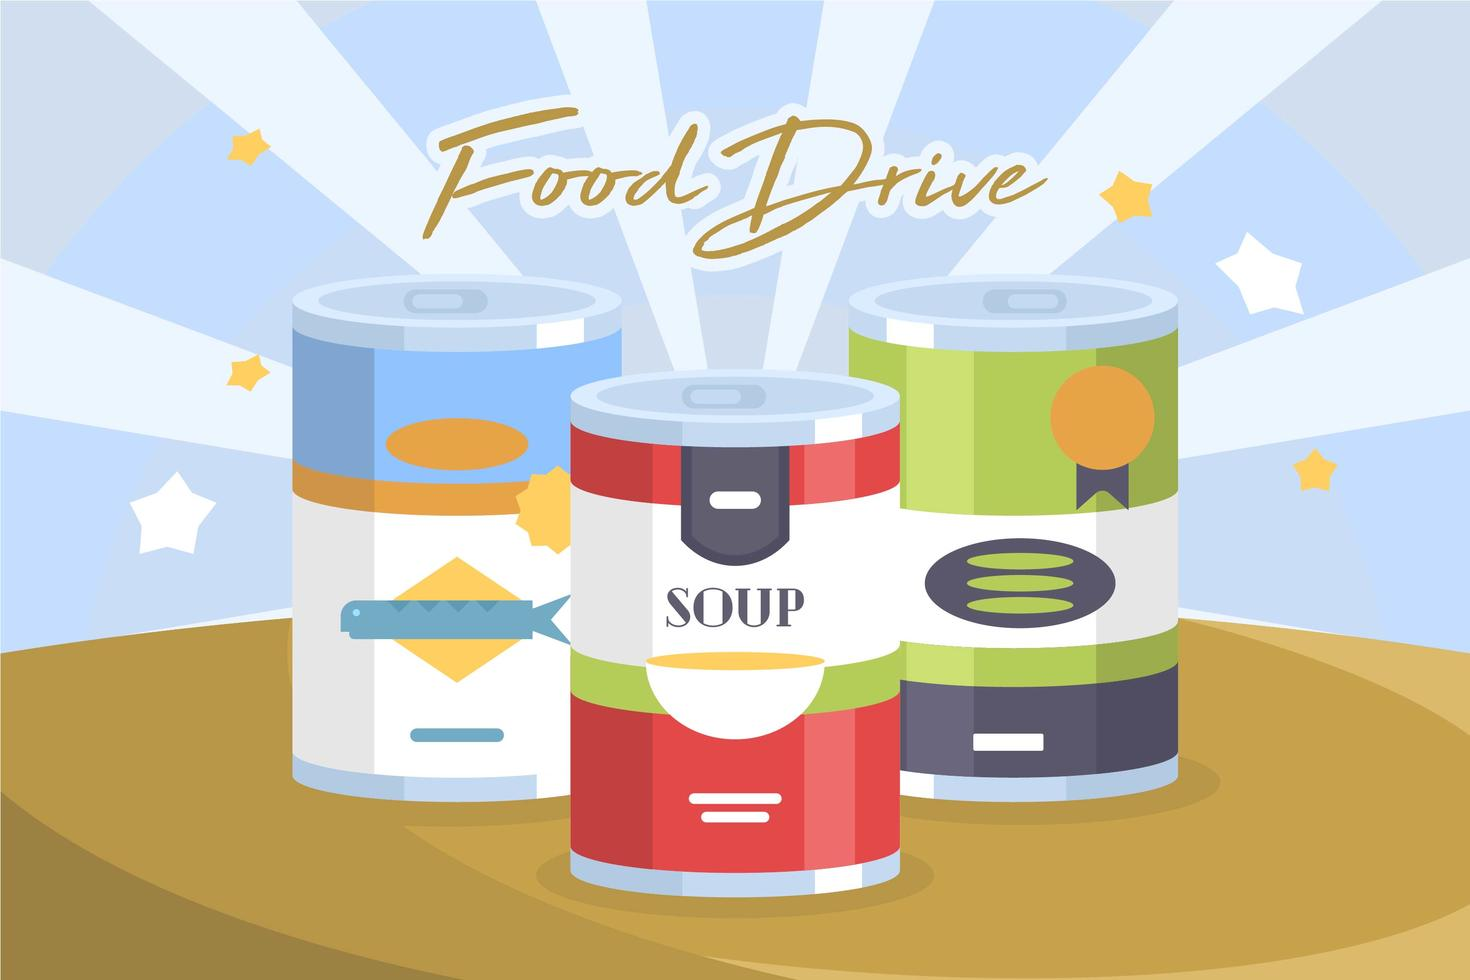 ACTS FOOD DRIVEMonth of April